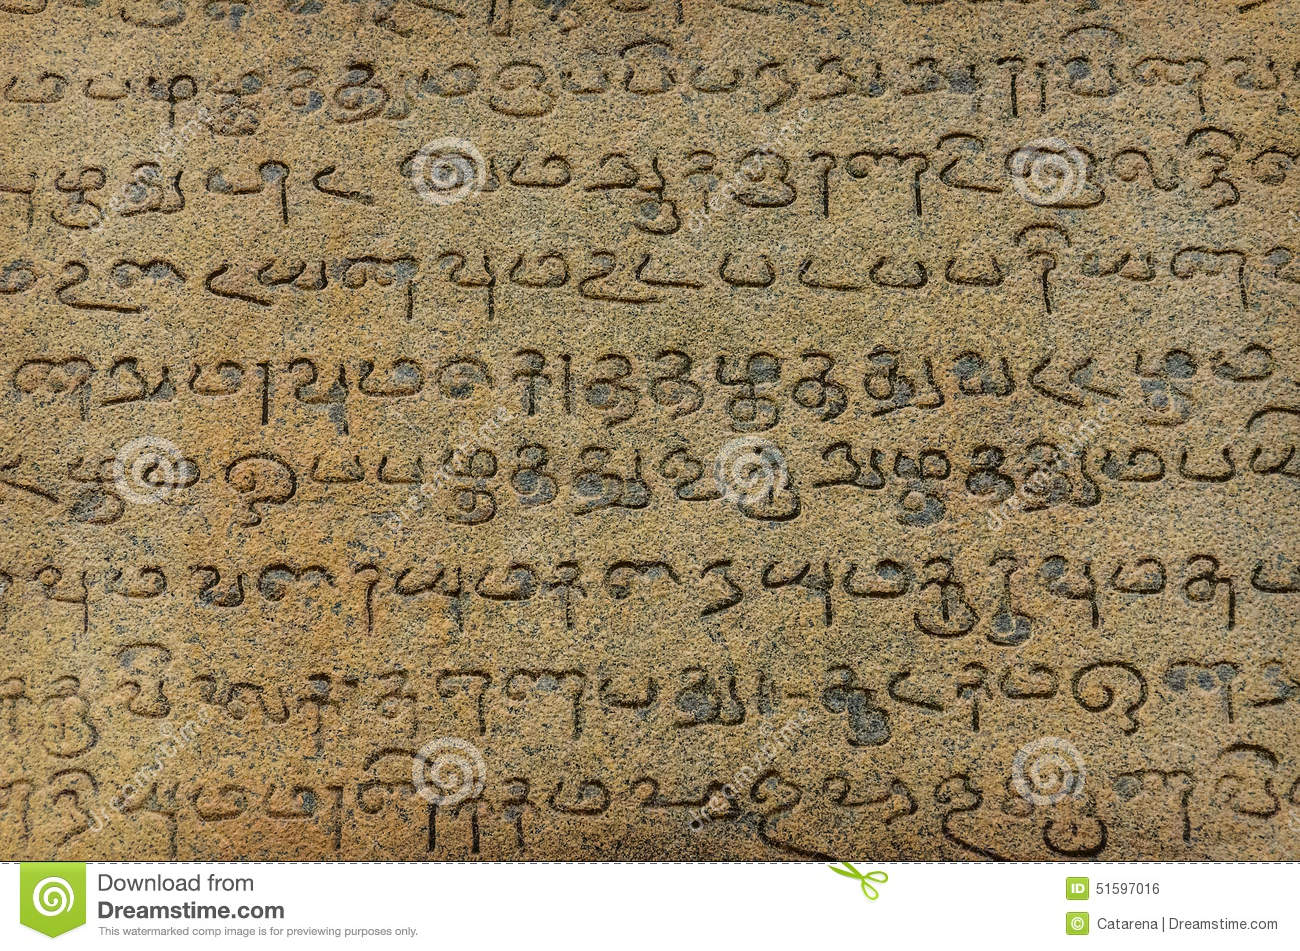 Ancient inscriptions on stone wall